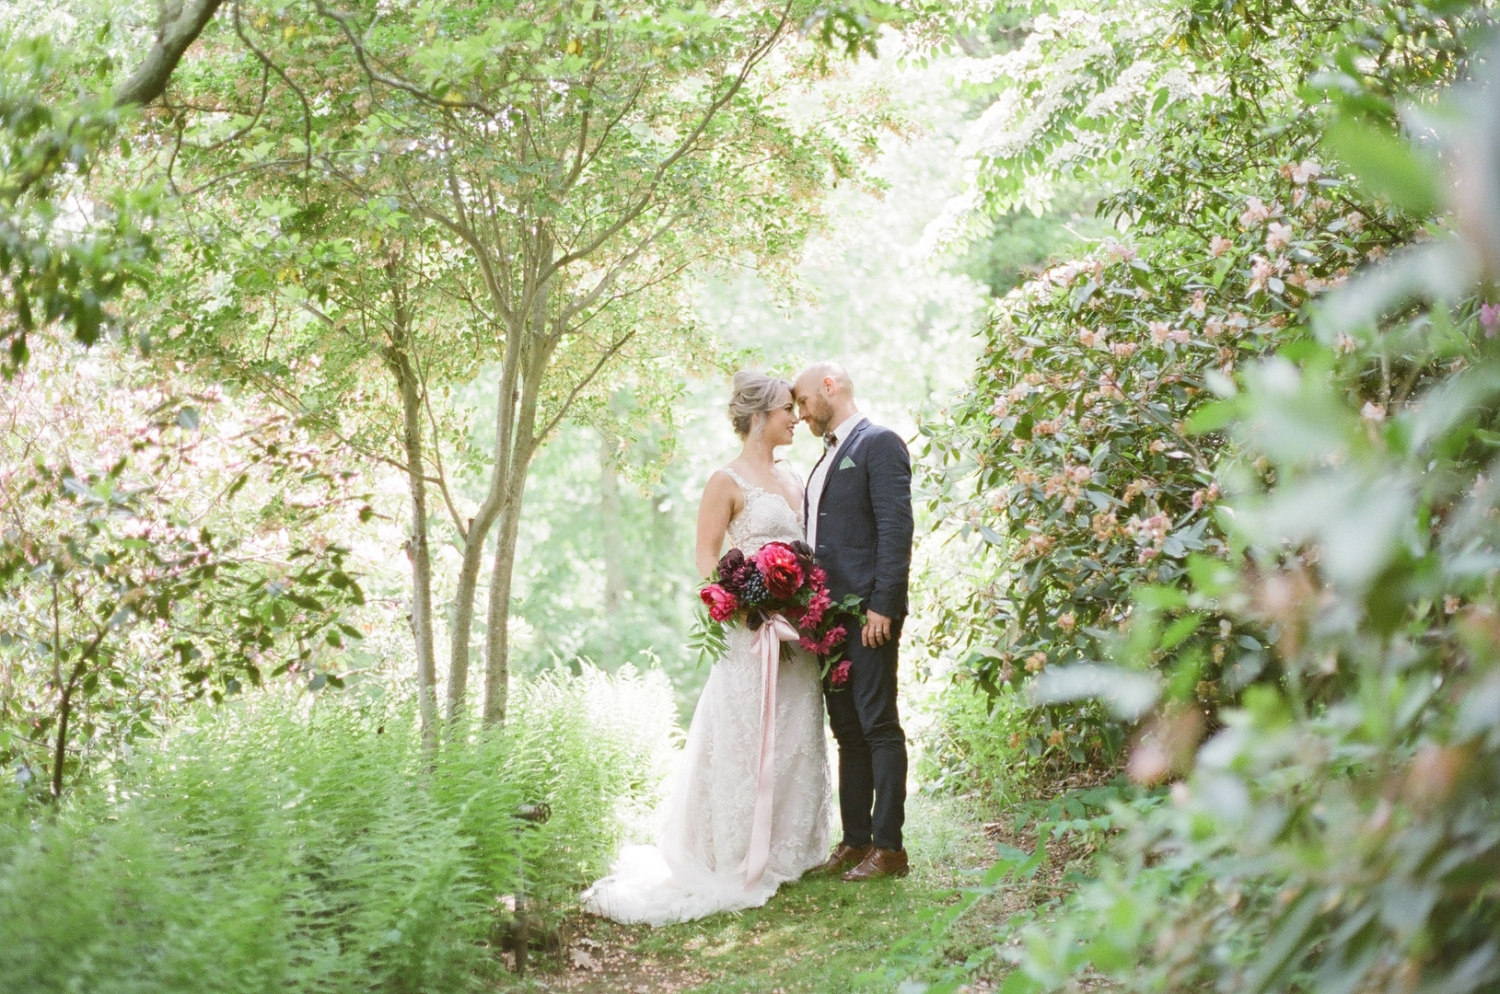 Bride and Groom photo in the garden with pink bouquet